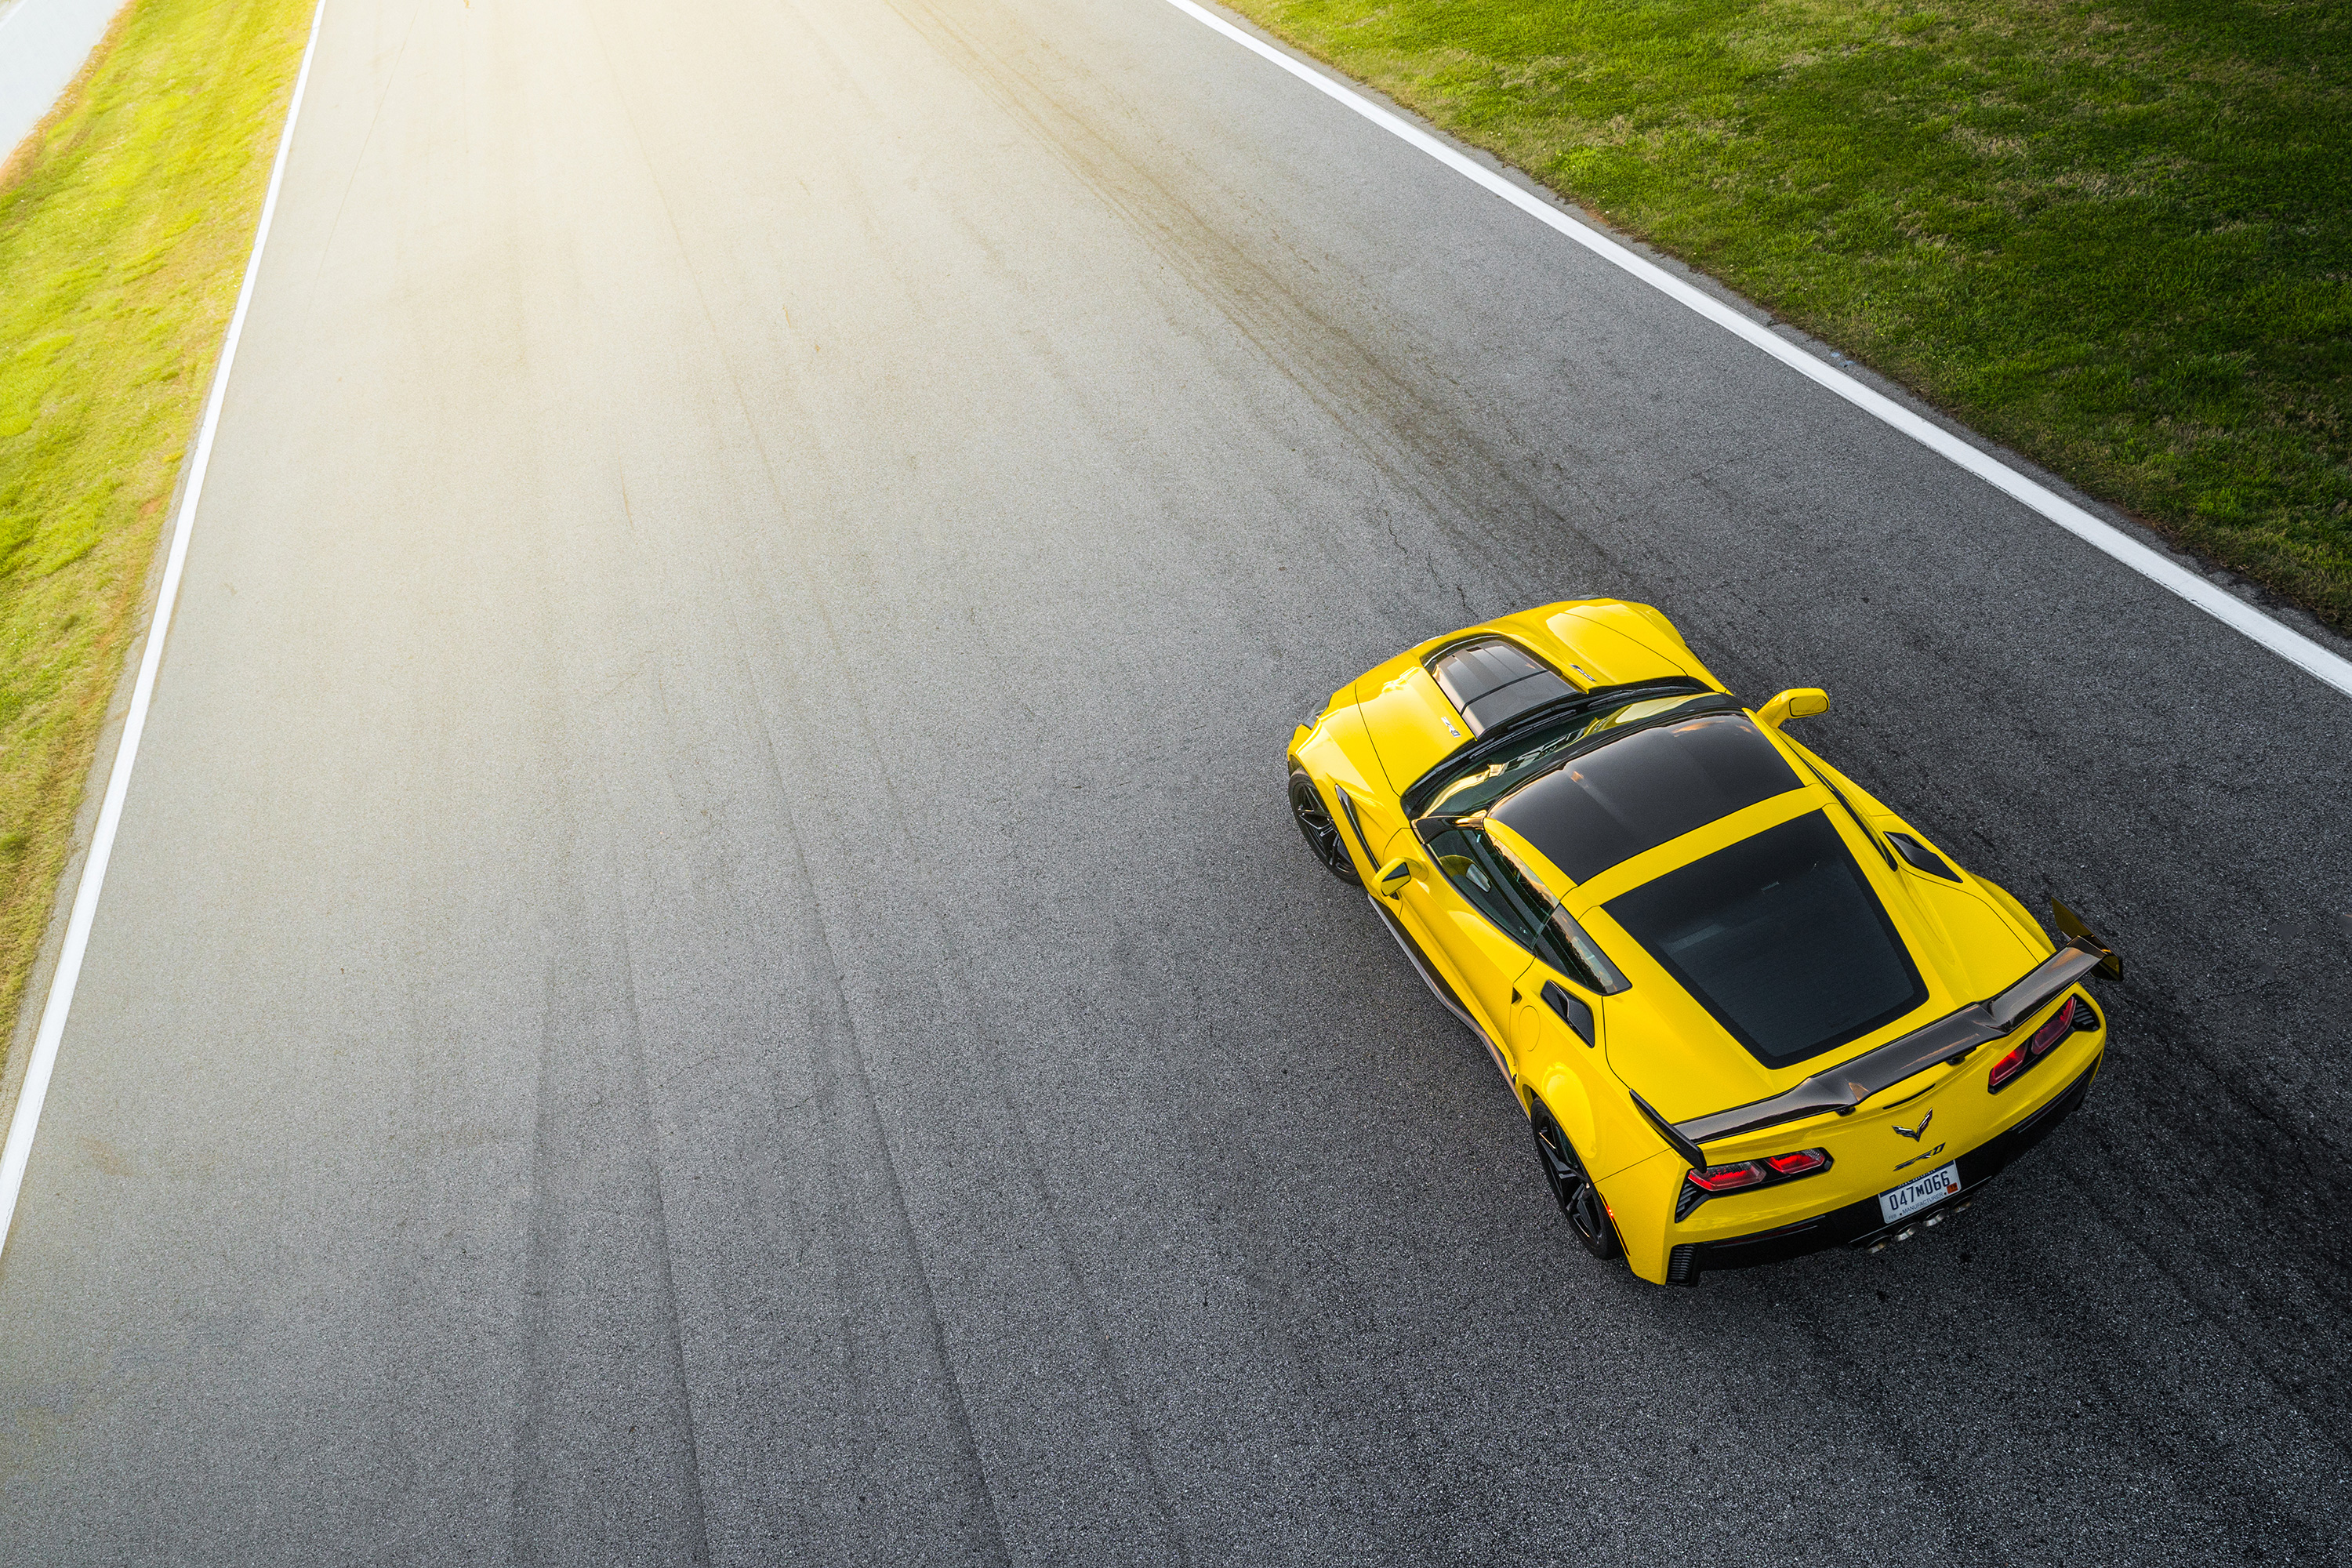 2019 chevrolet corvette zr1 track yellow sunshine